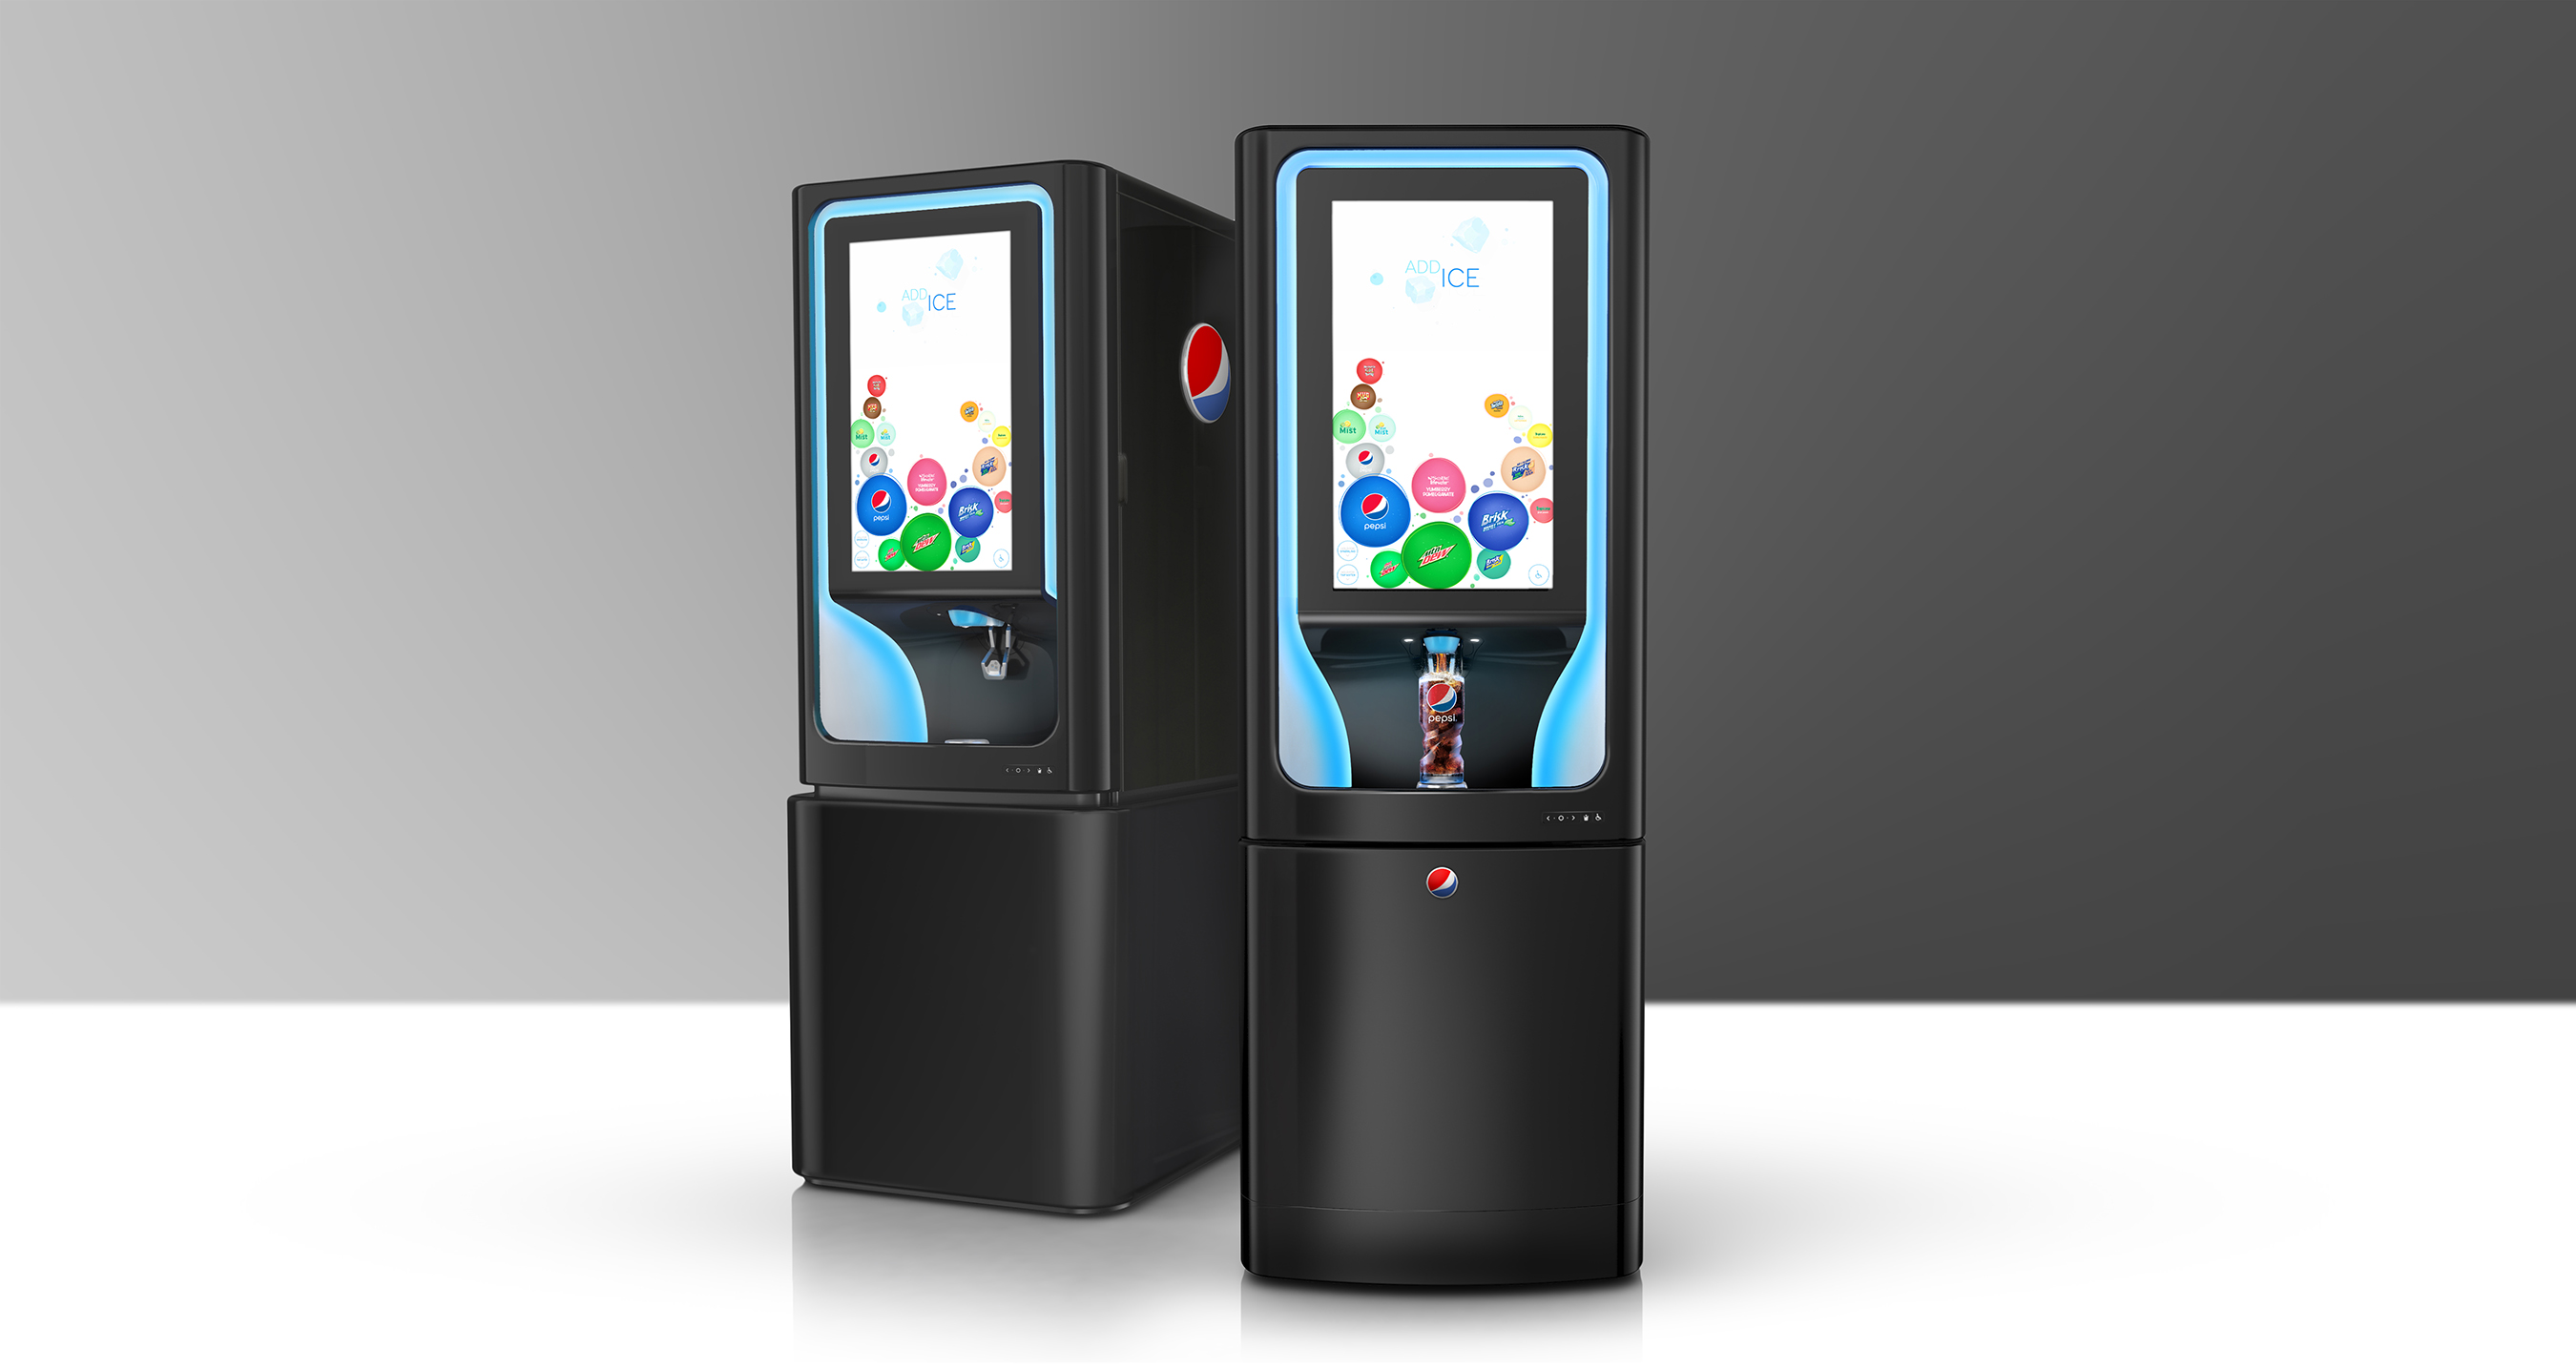 Pepsi Spire, a state-of-the-art beverage dispensing fountain, puts hundreds of drink combinations at people's fingertips and can pour up to 3 flavor shots simultaneously with any featured beverage.